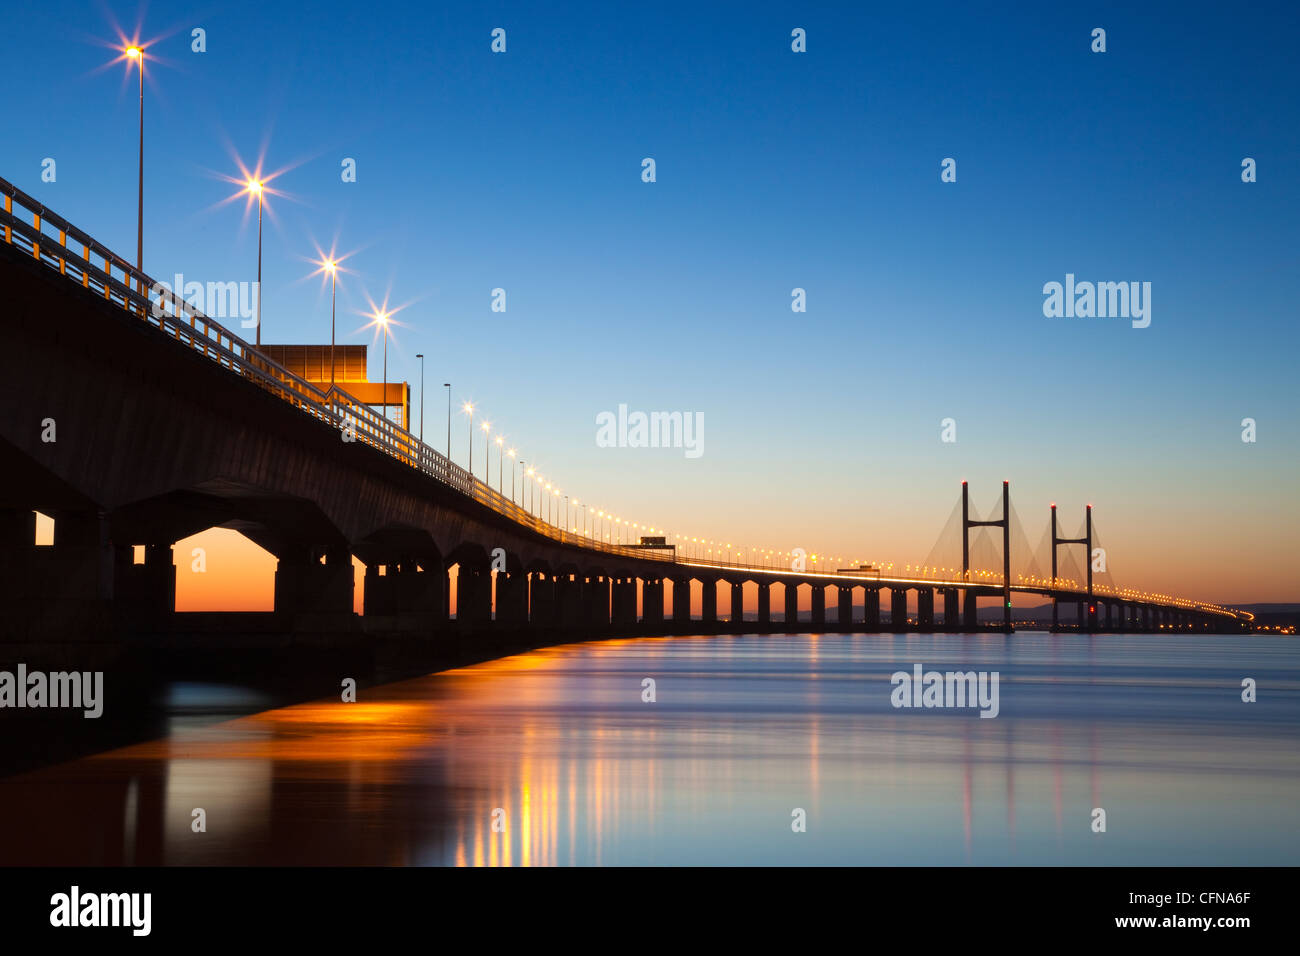 Second Severn Crossing Bridge, South East Wales, Wales, United Kingdom, Europe - Stock Image